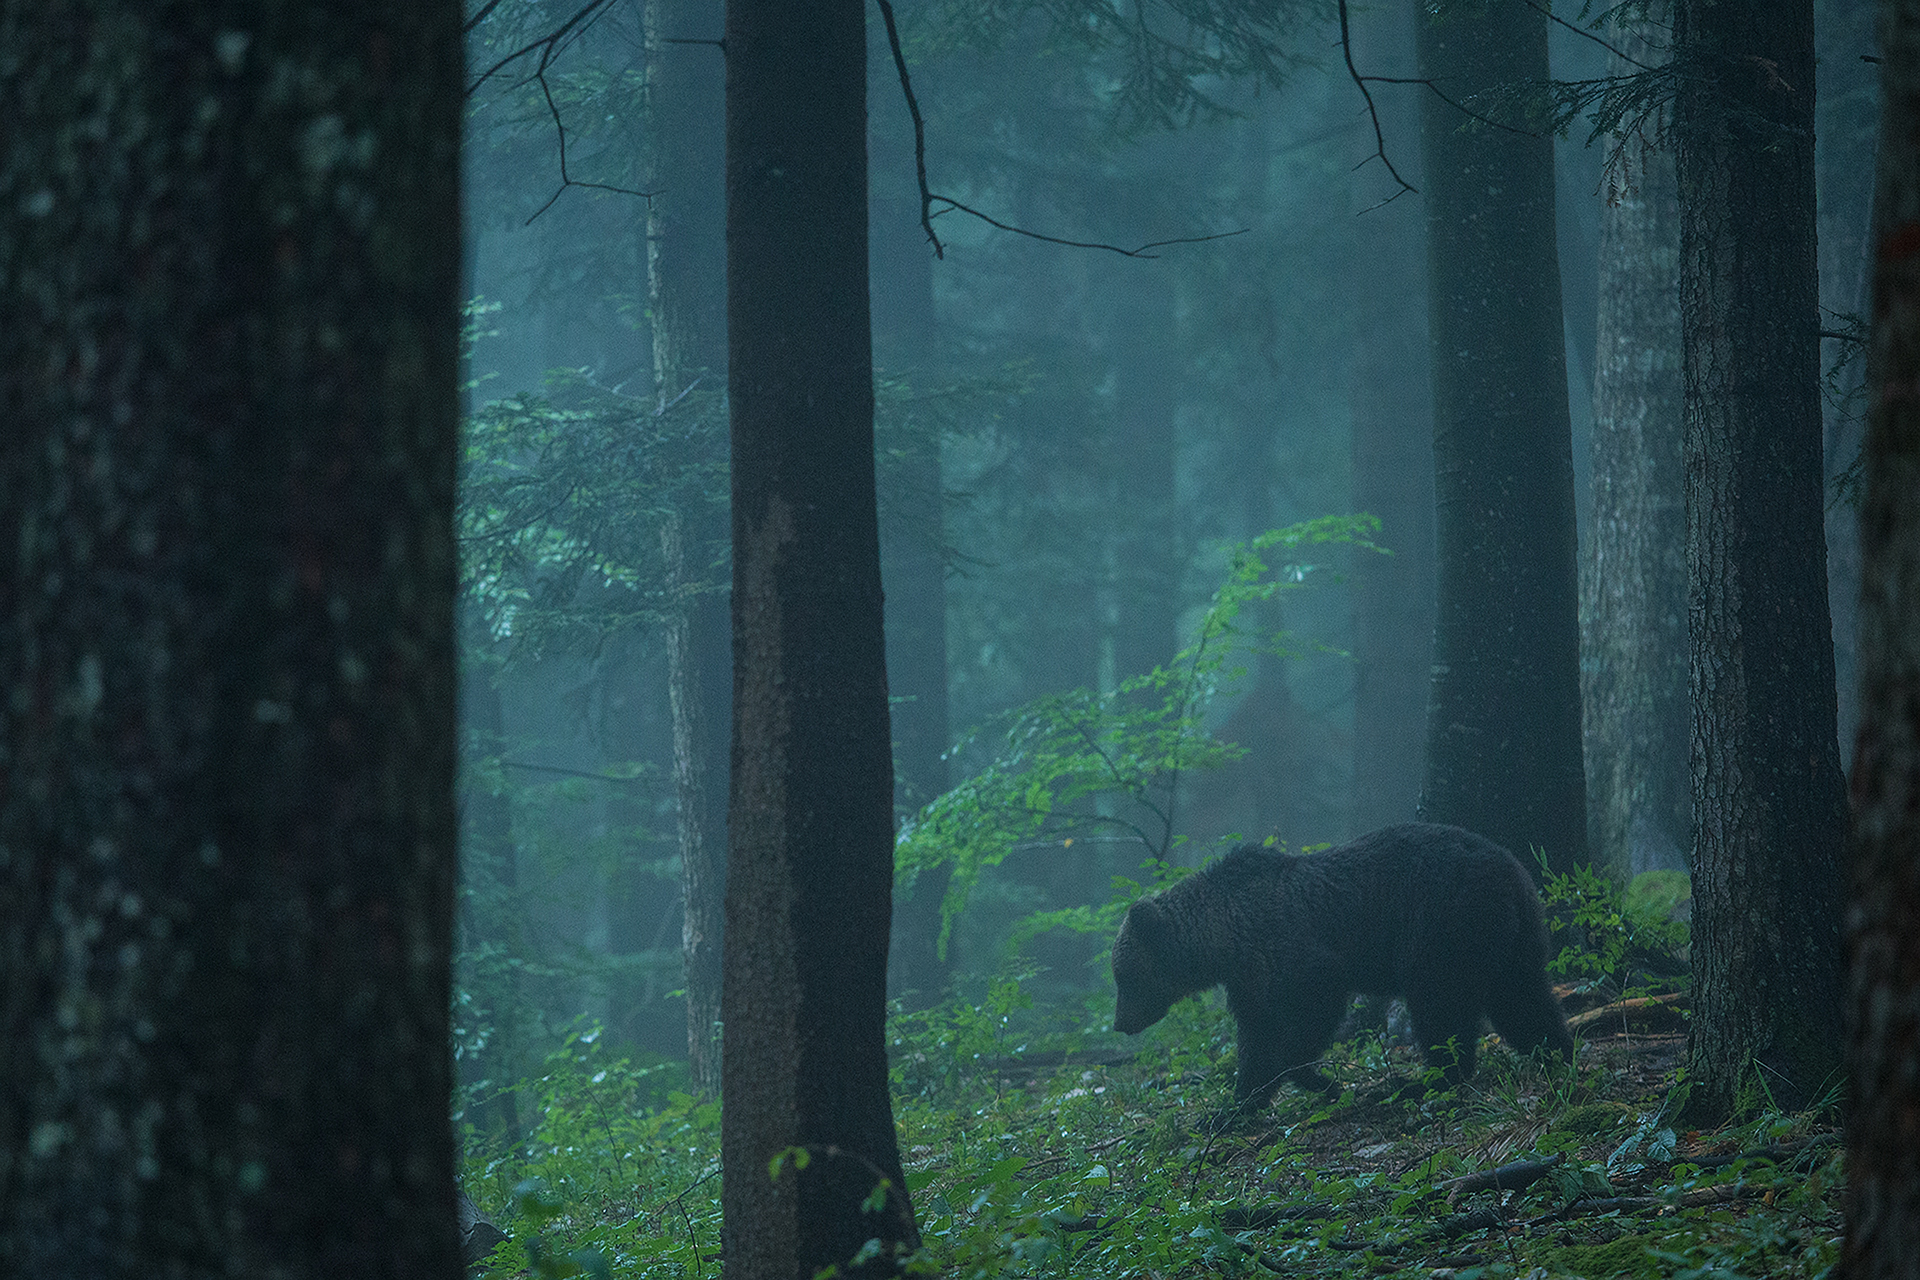 The Living on the Edge project is raising awareness of large predators in Central Europe, and promoting the co-existence of humans, wildlife and wild nature.